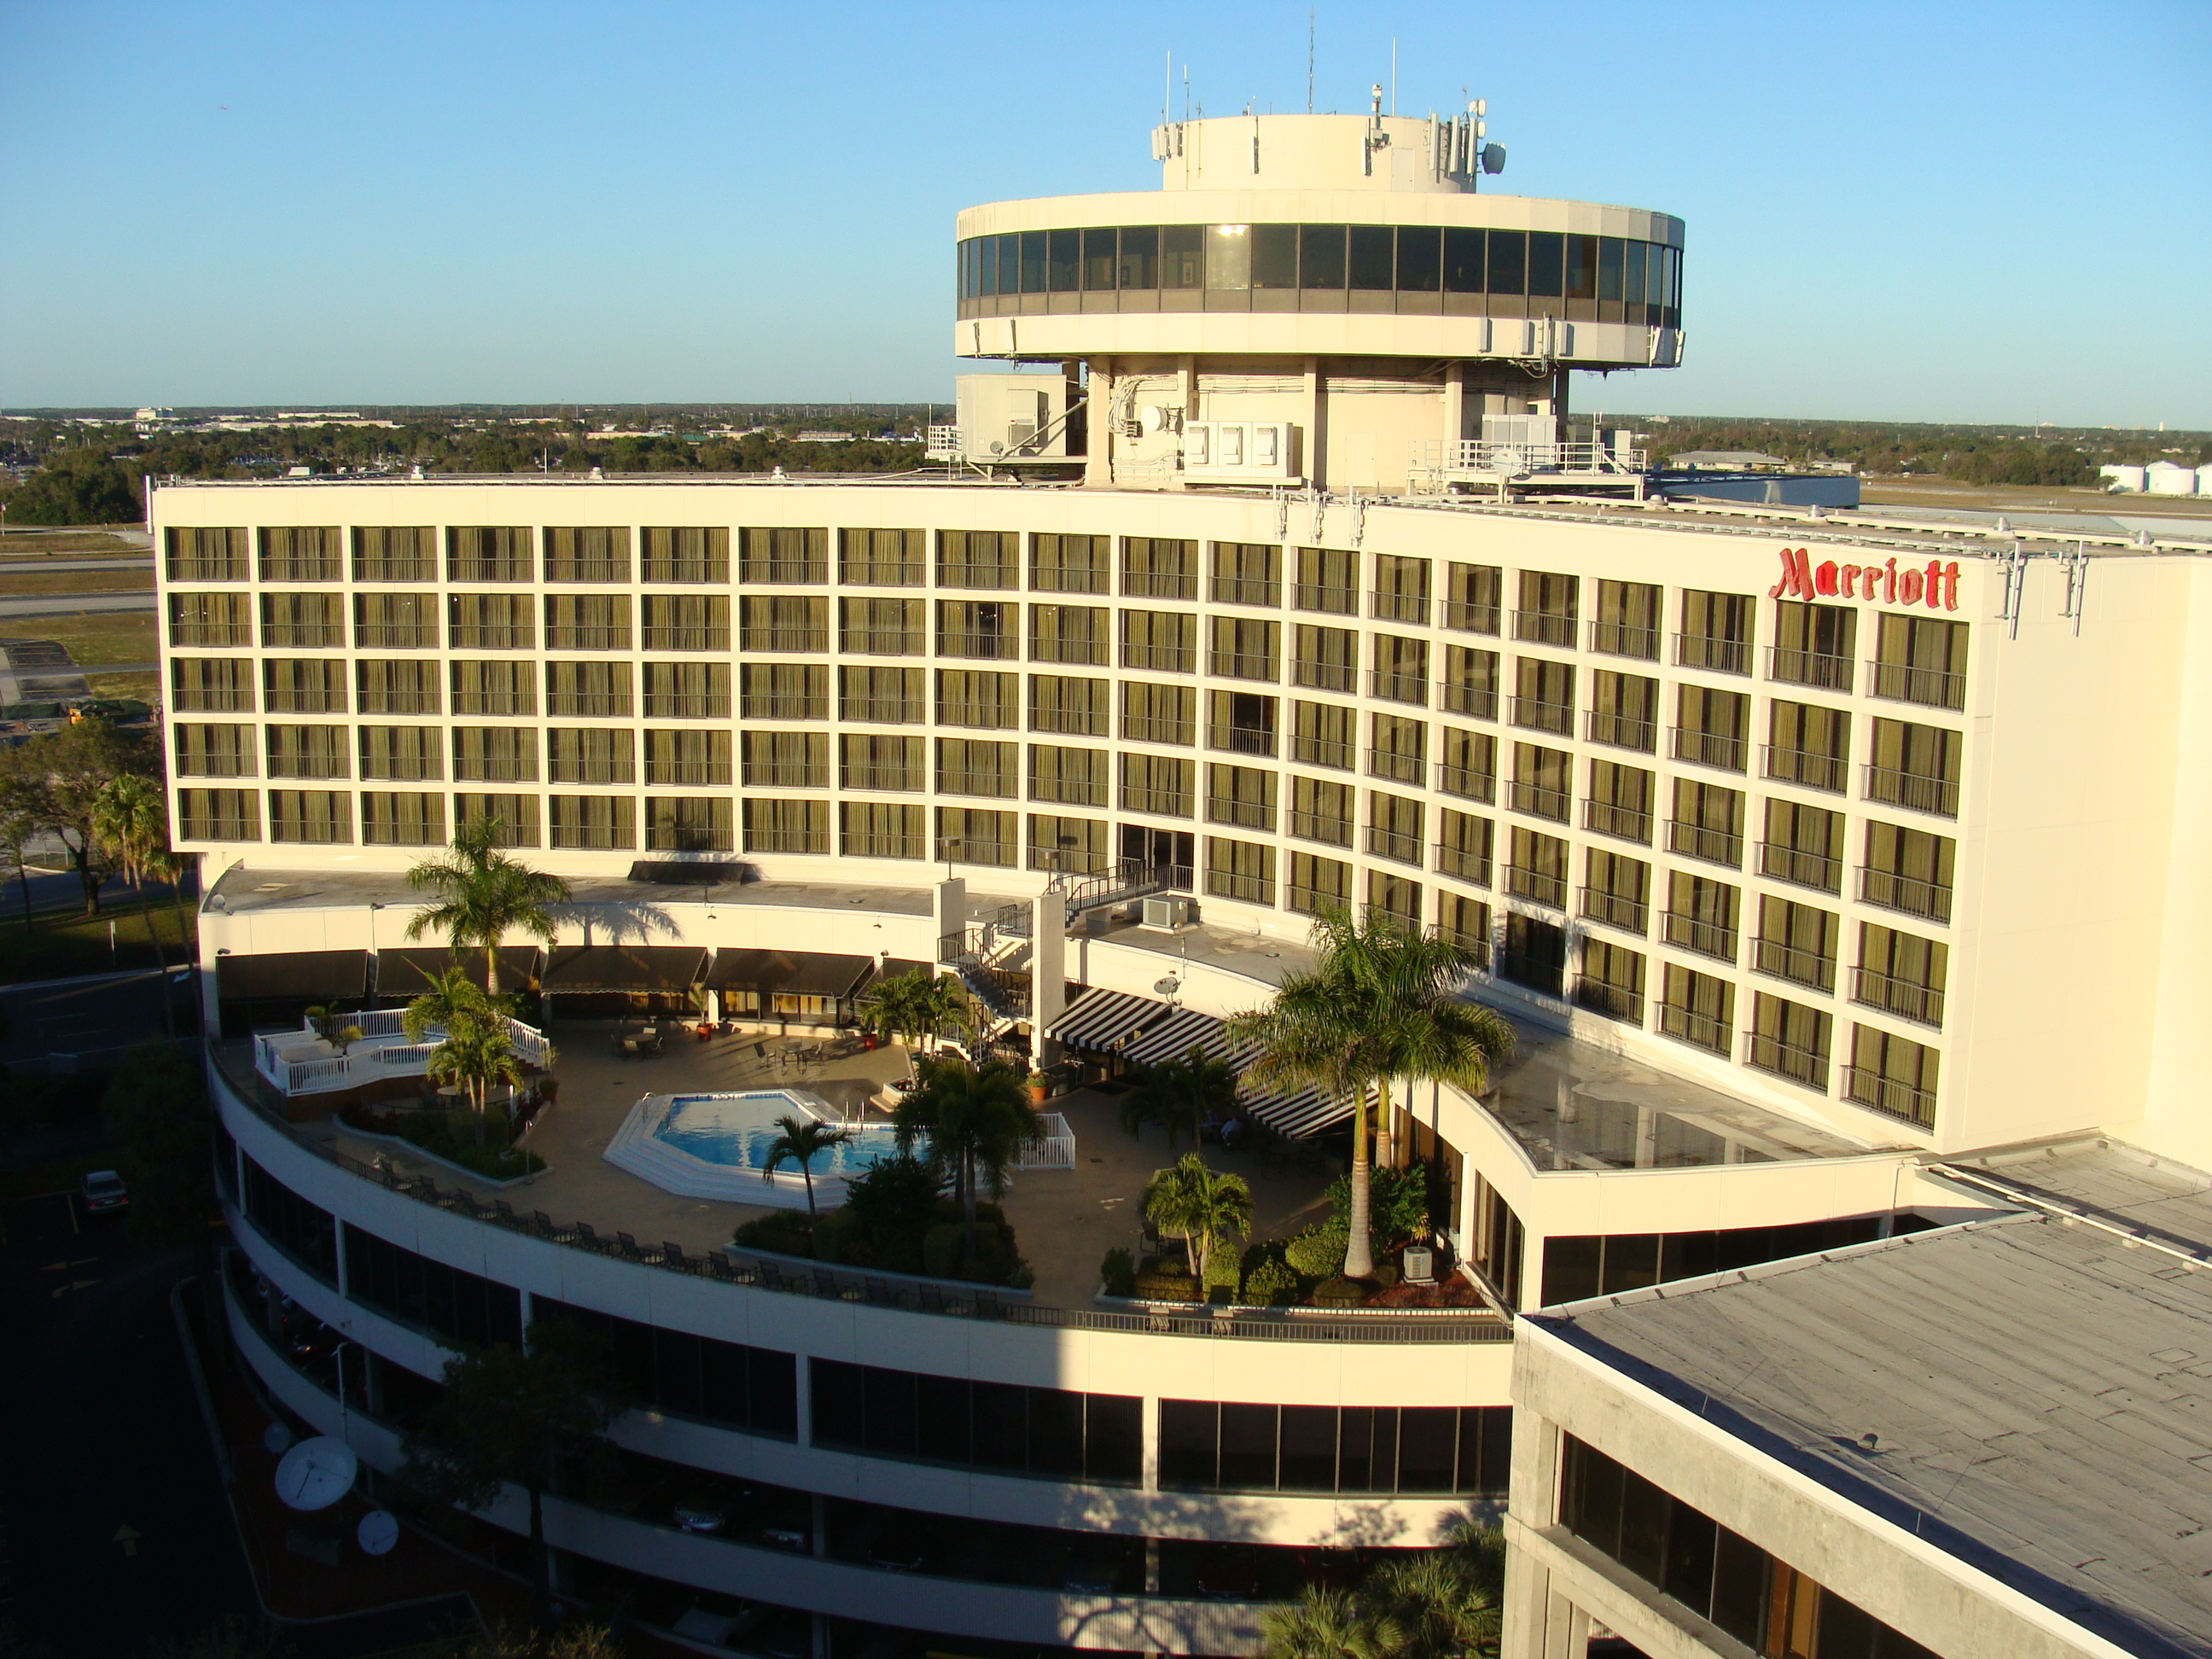 The marriott located adjacent of the parking garage